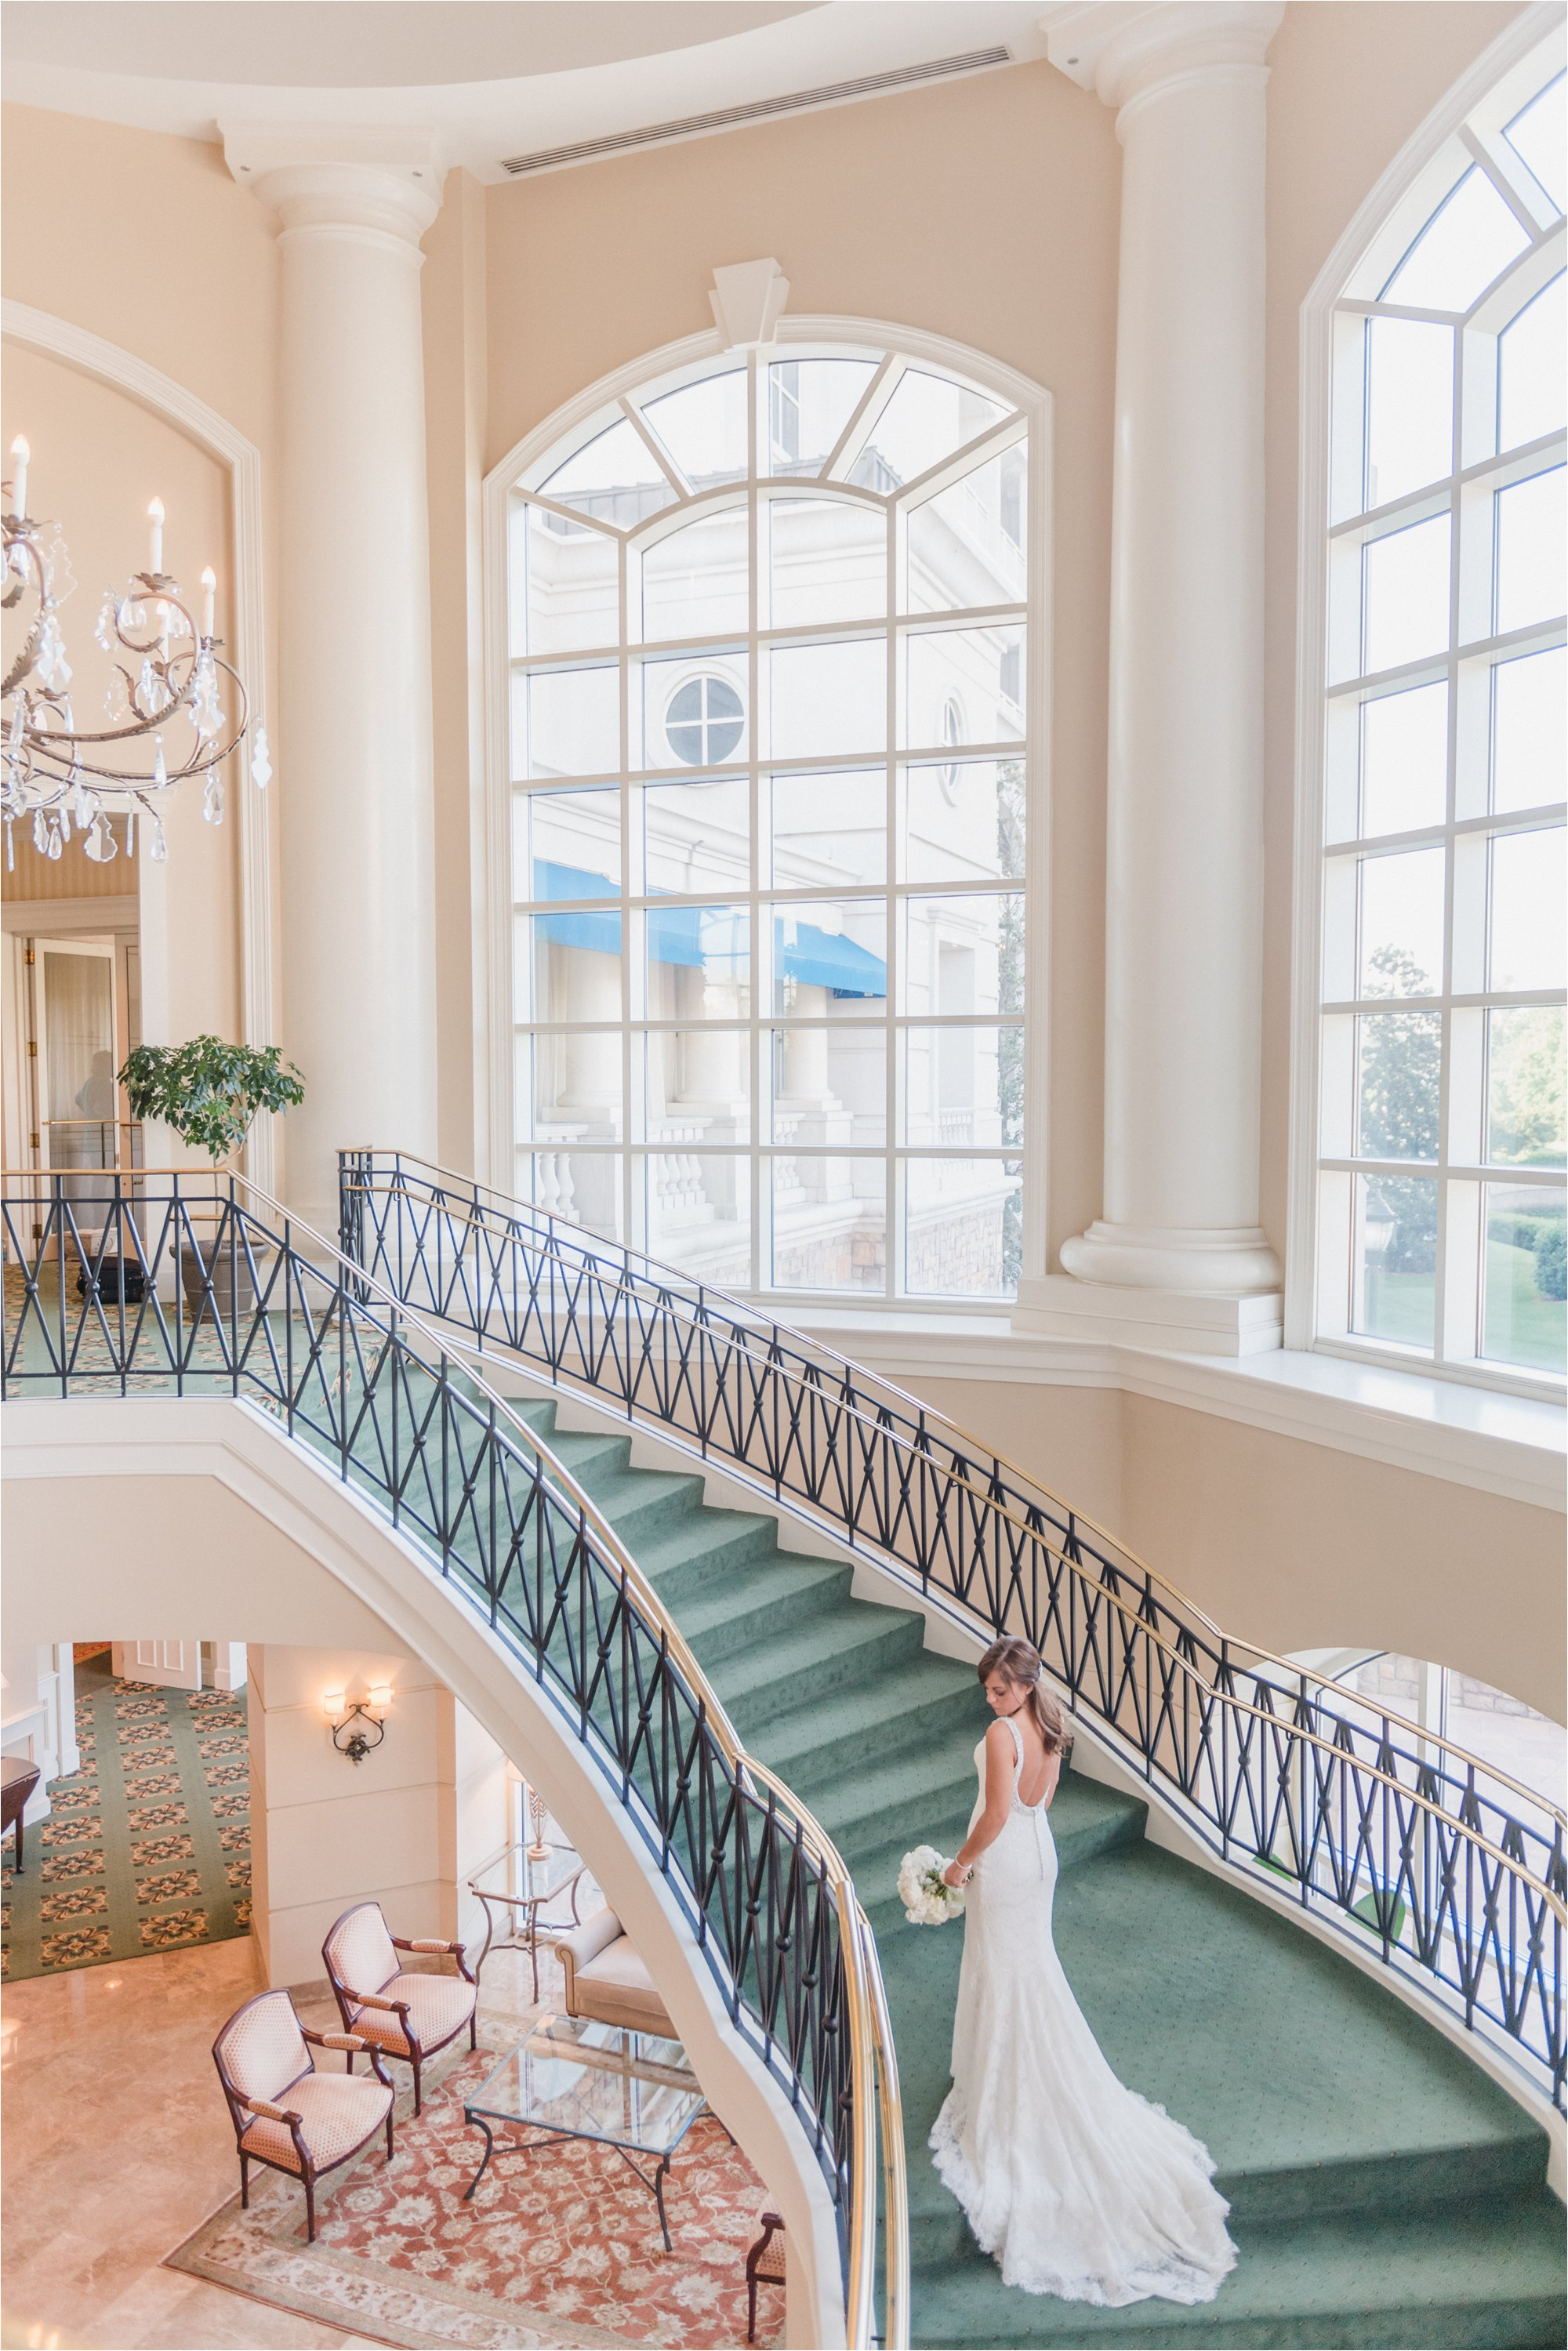 Bridal Portrait on Staircase of The Ballantyne Hotel